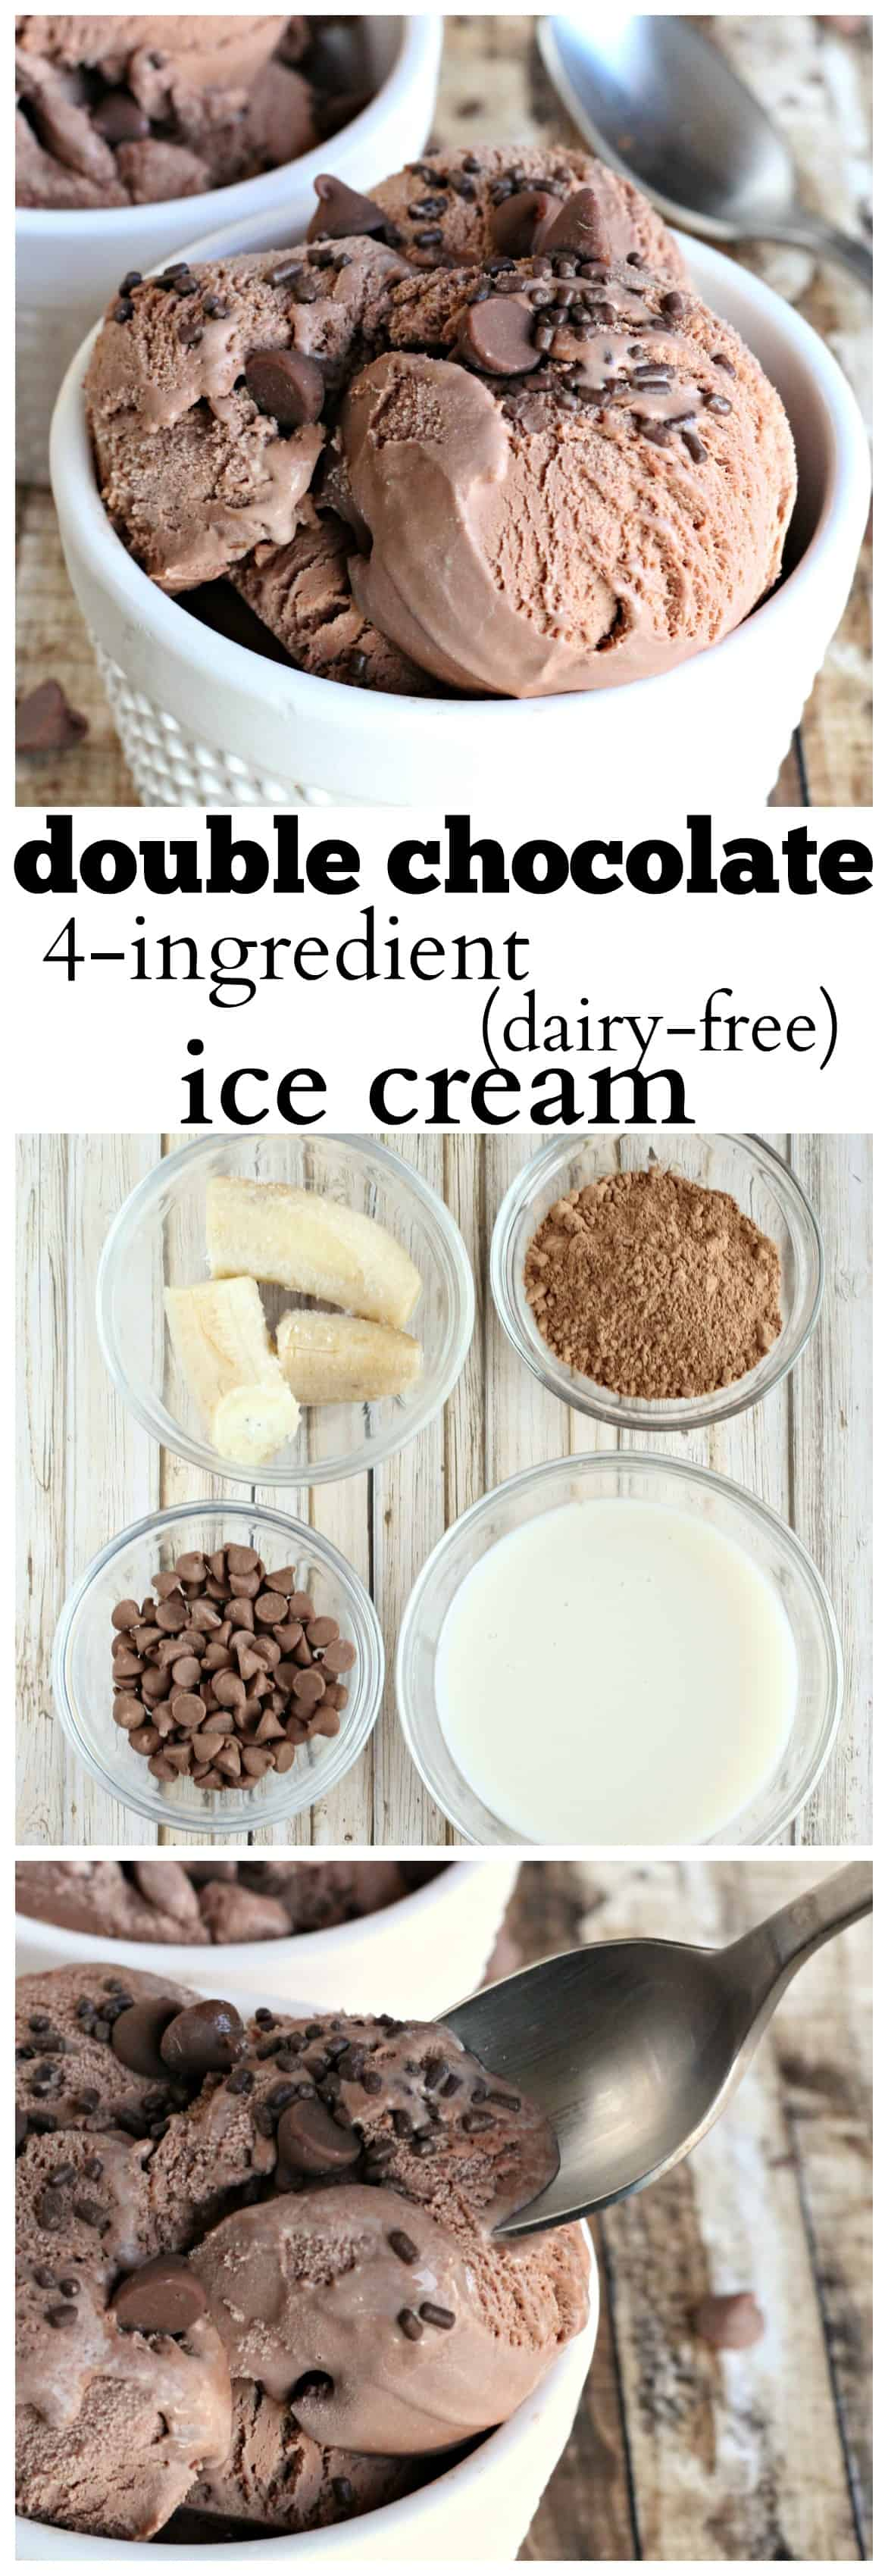 Double chocolate 4 ingredient dairy free ice cream life a little double chocolate dairy free ice cream 6 ccuart Images